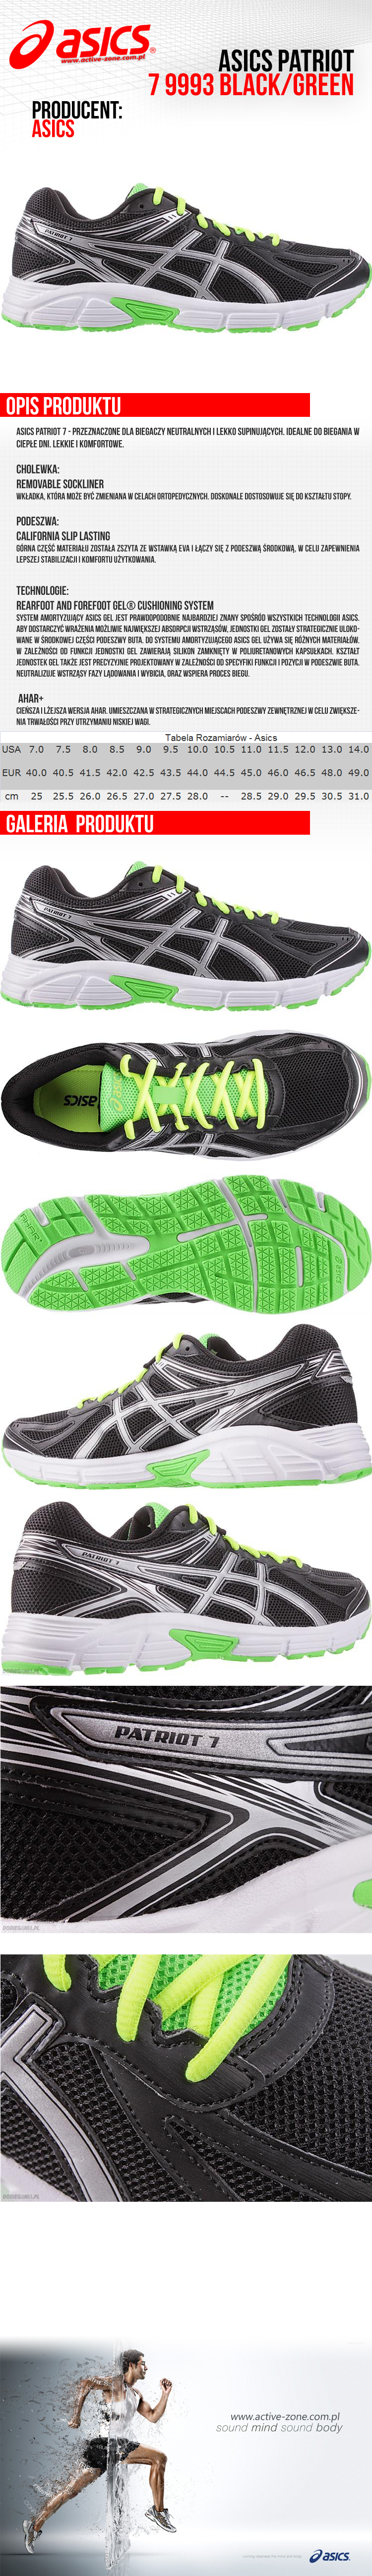 Asics PATRIOT 7 9993 BlackGreen(1)